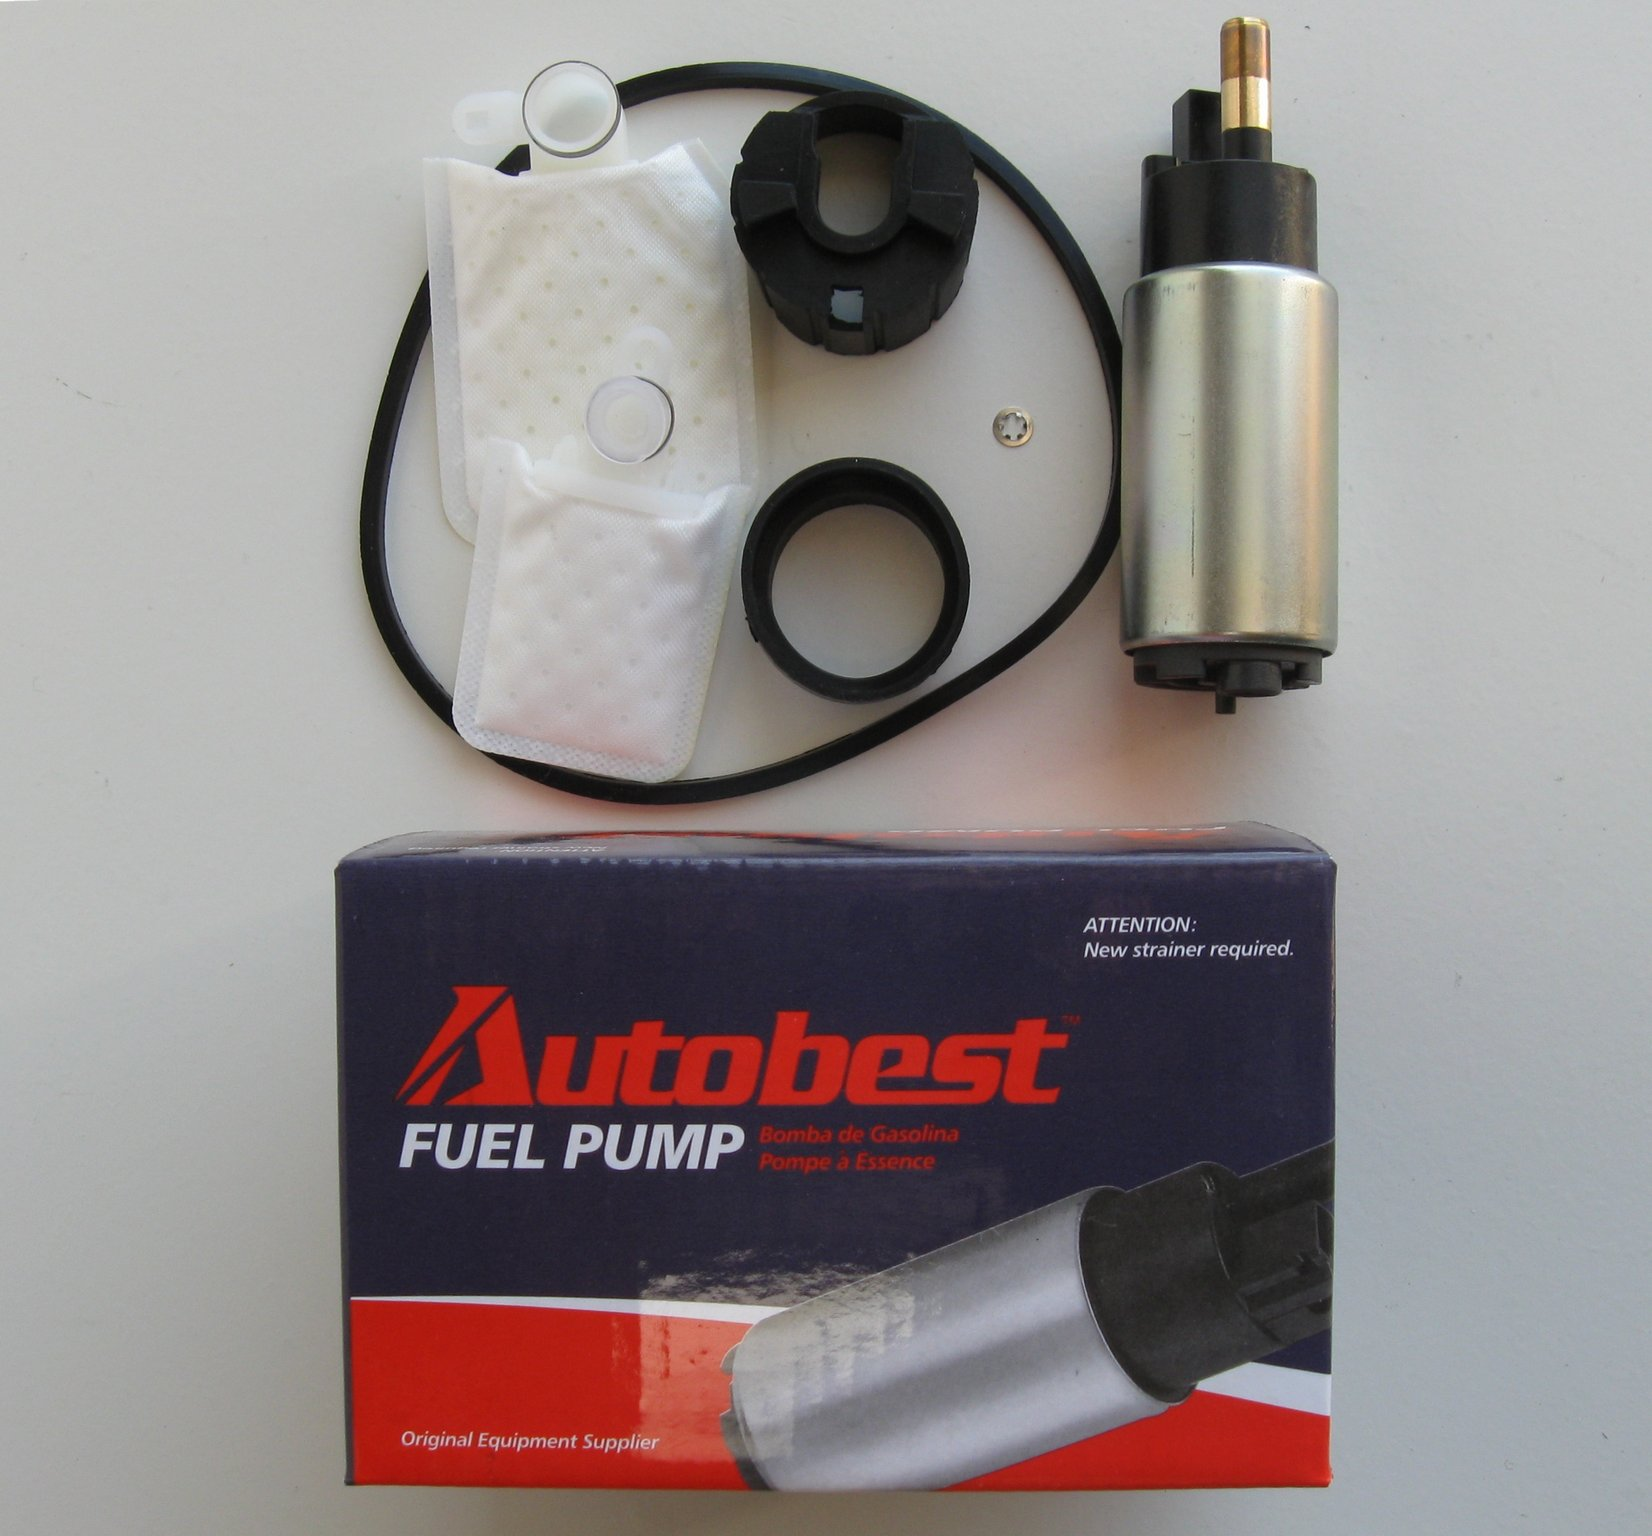 2000 Ford Contour Fuel Pump and Strainer Set A0 F1301